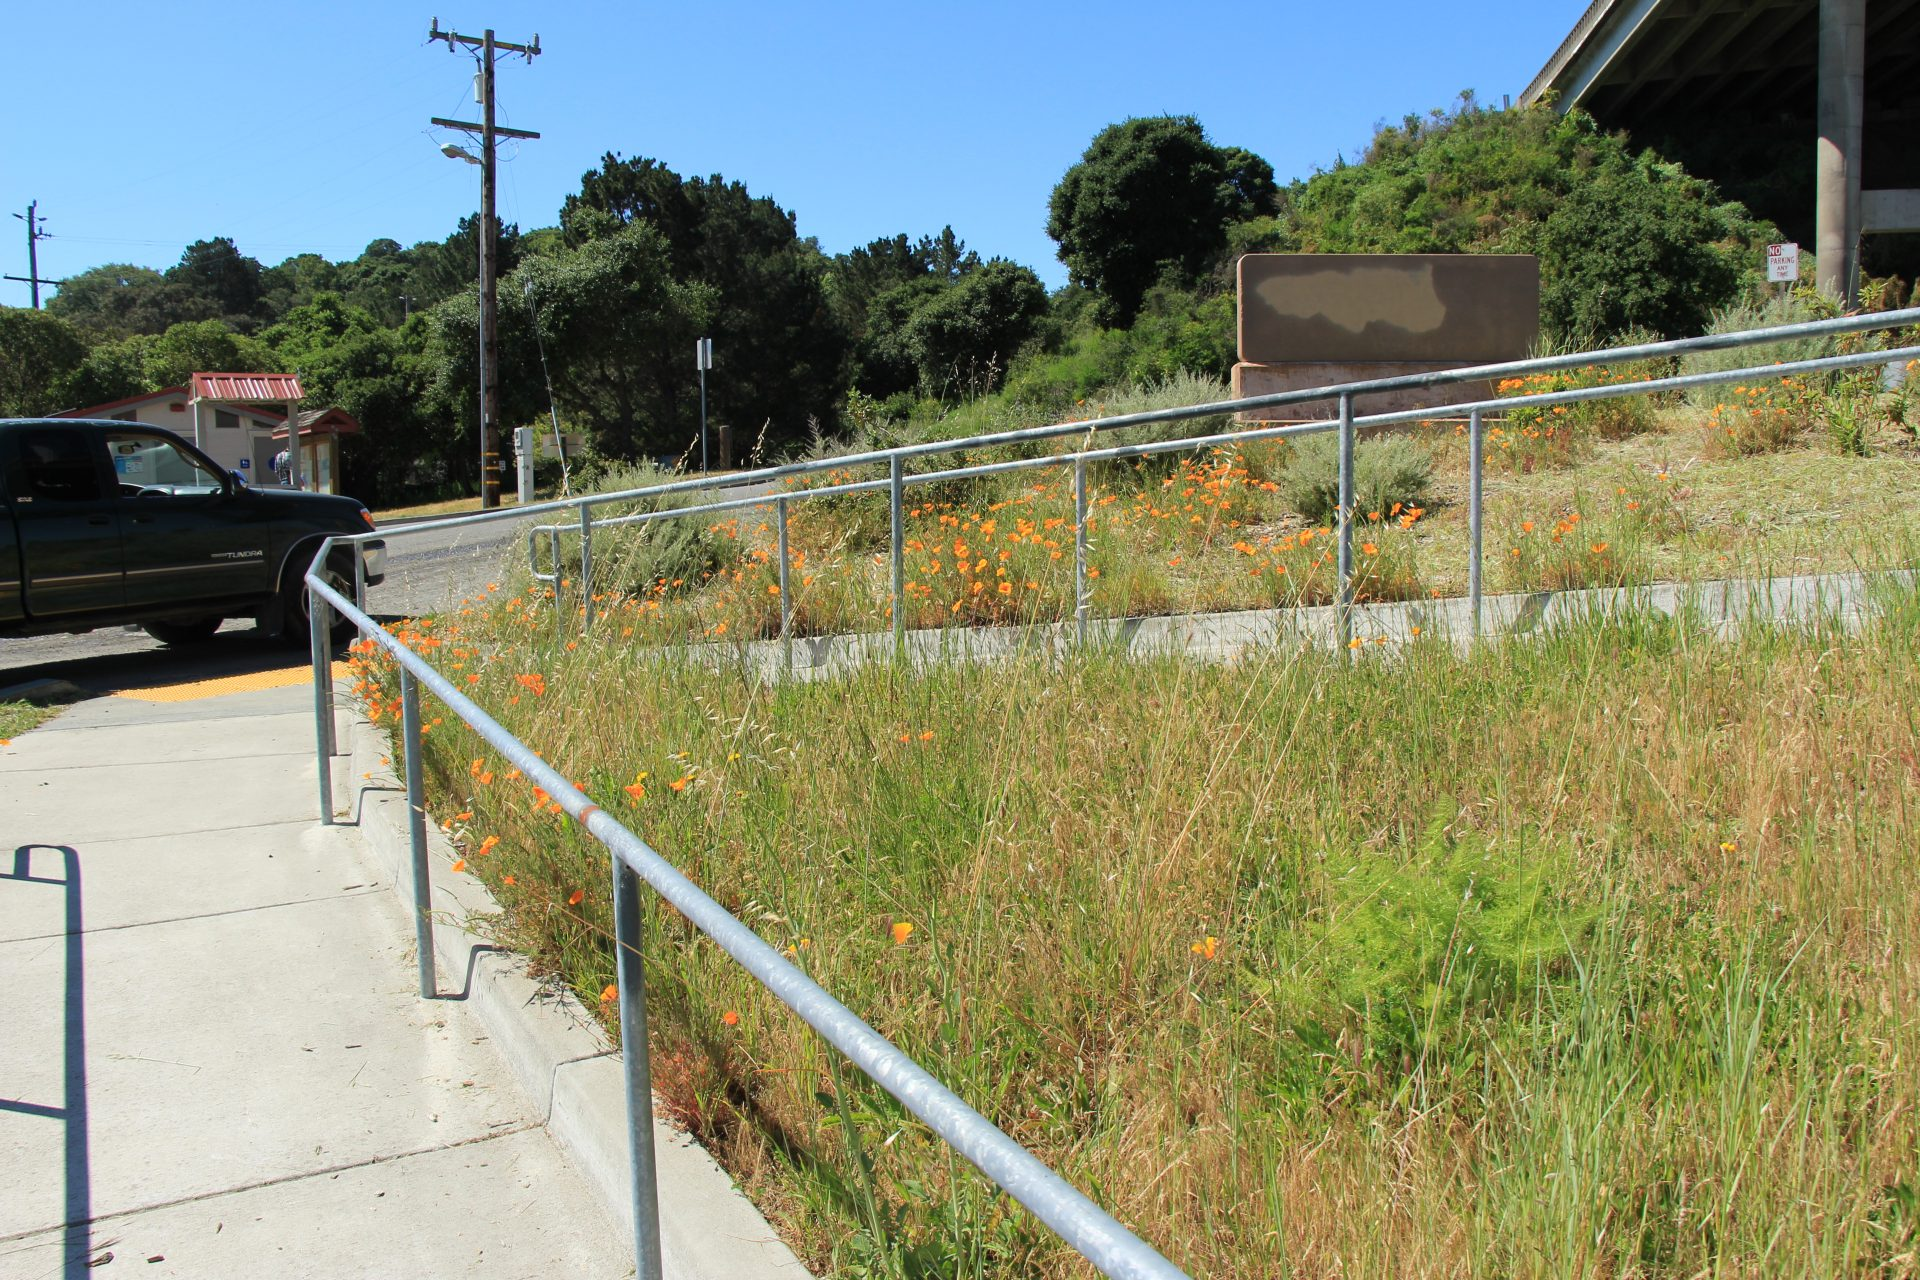 View of metal railing alongside of paved path